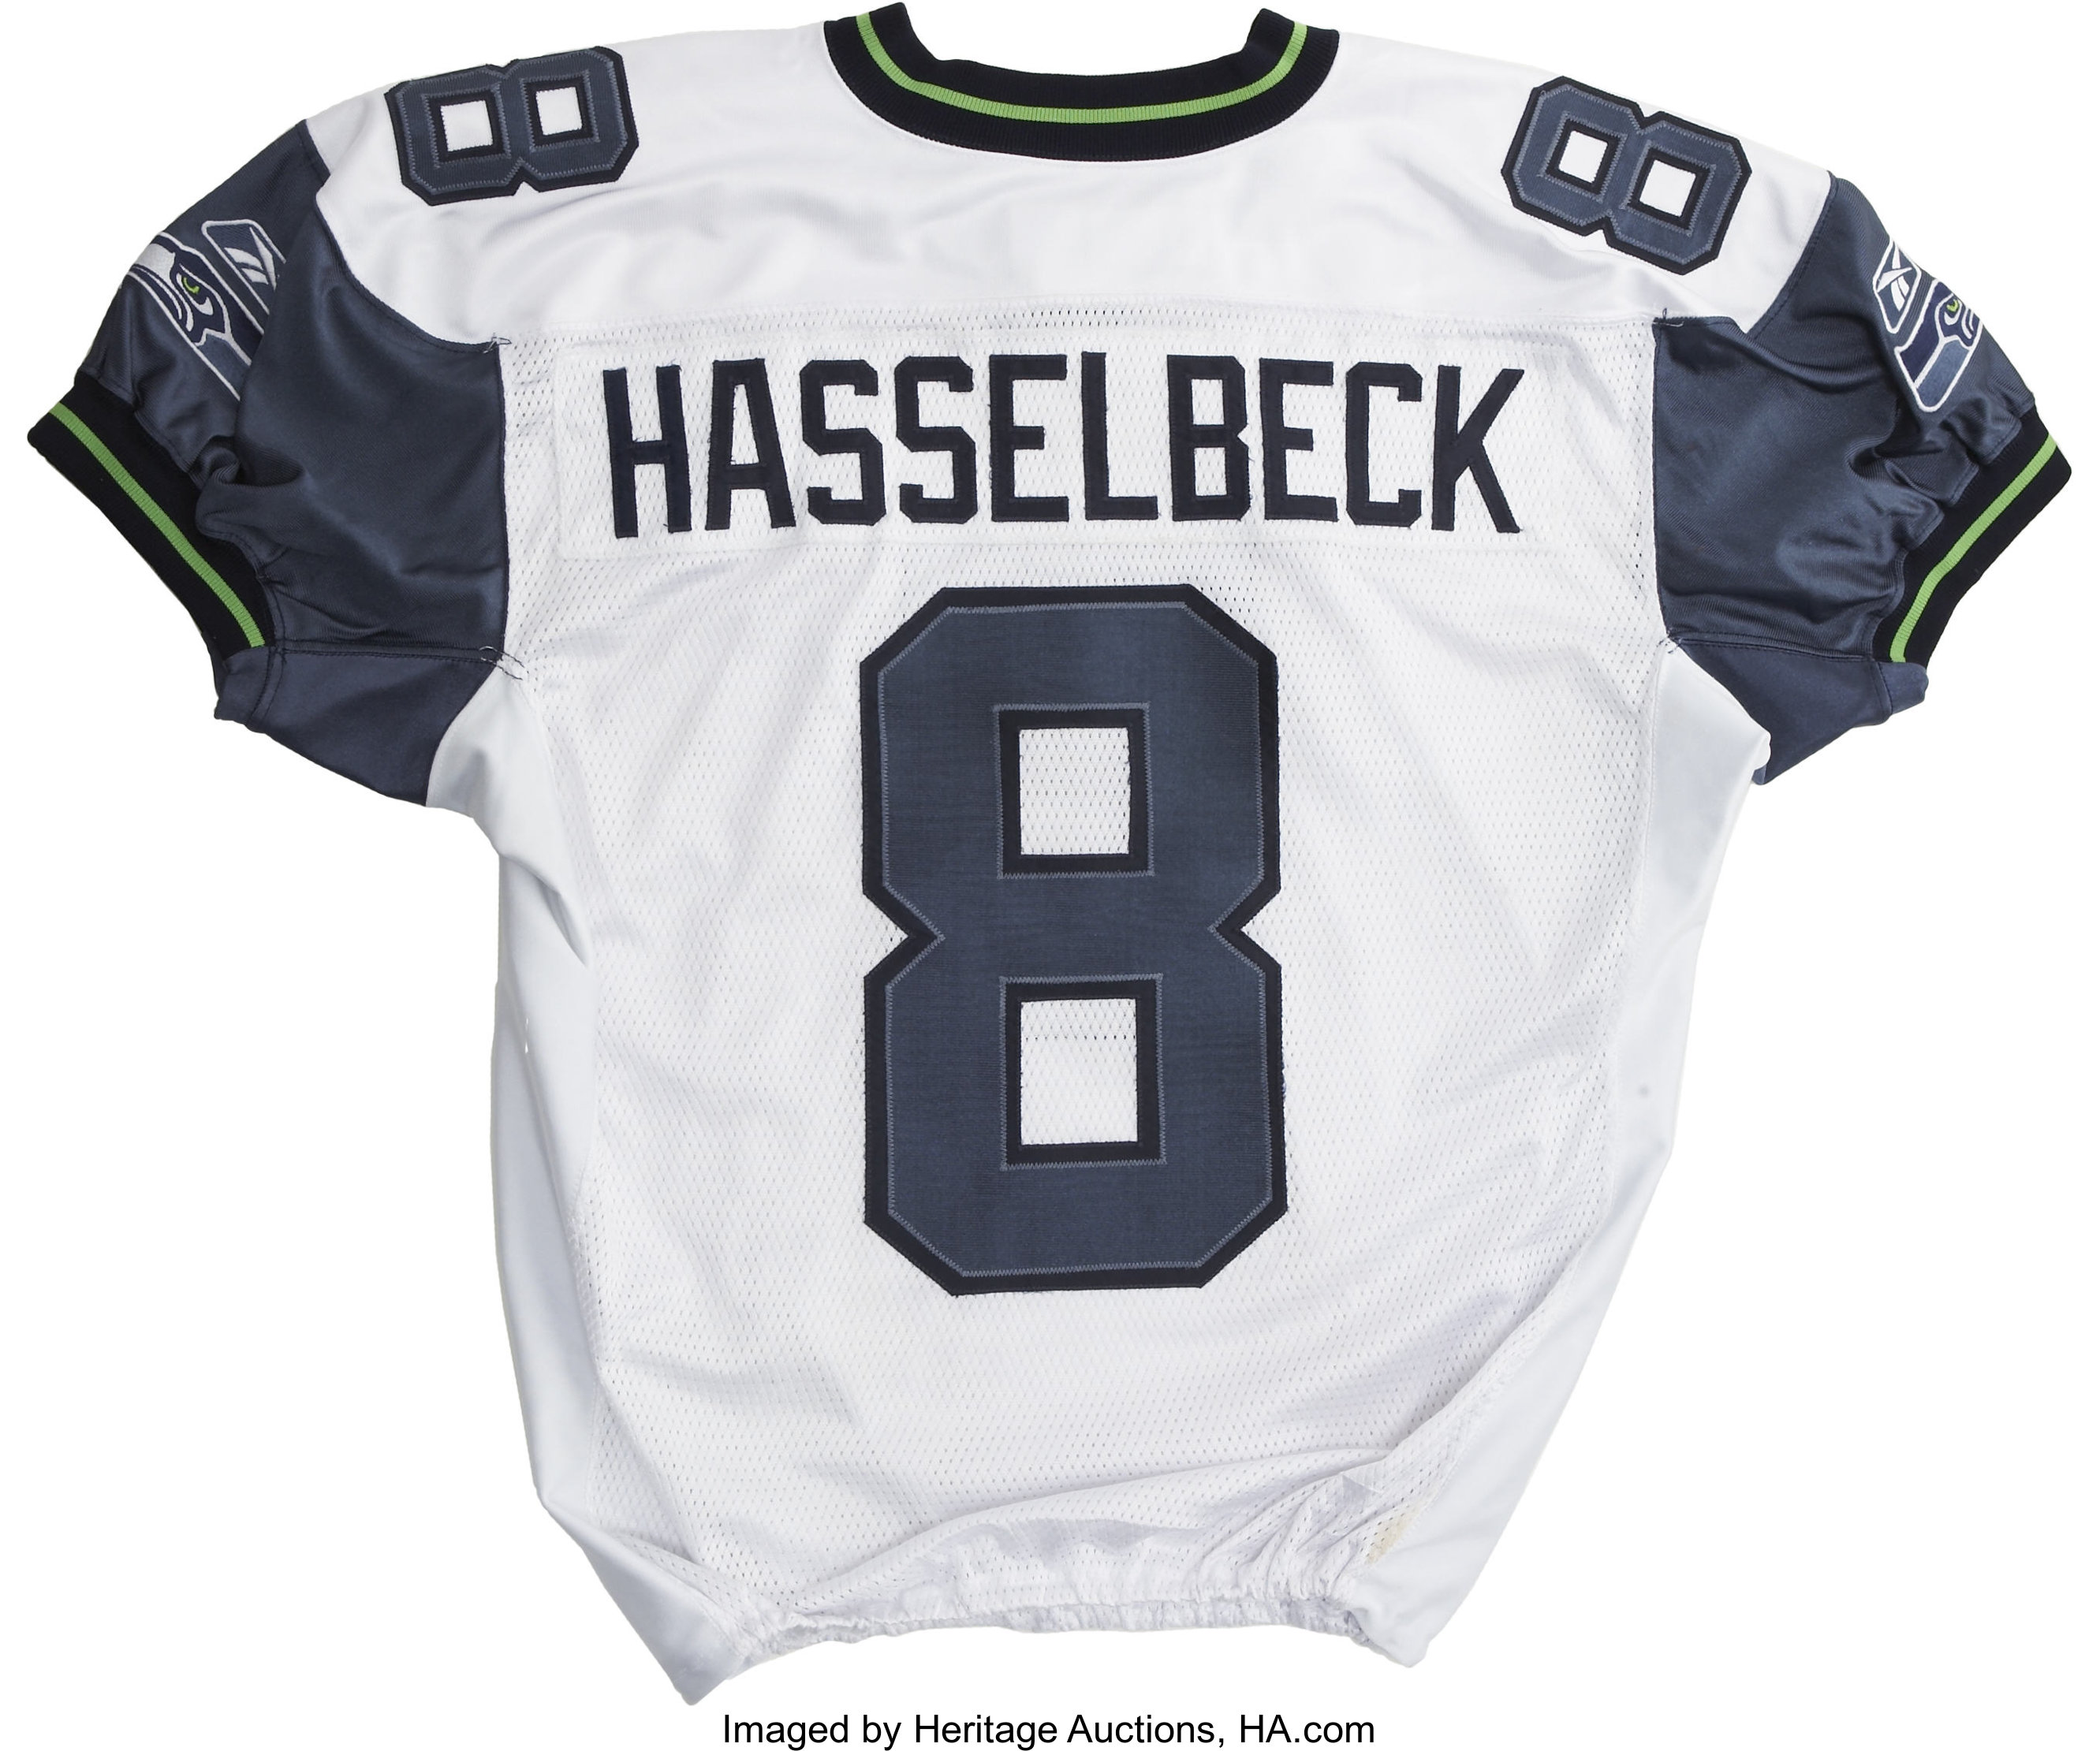 online store 2a197 1fb39 2003 Matt Hasselbeck Game Worn Jersey. After coming into the ...